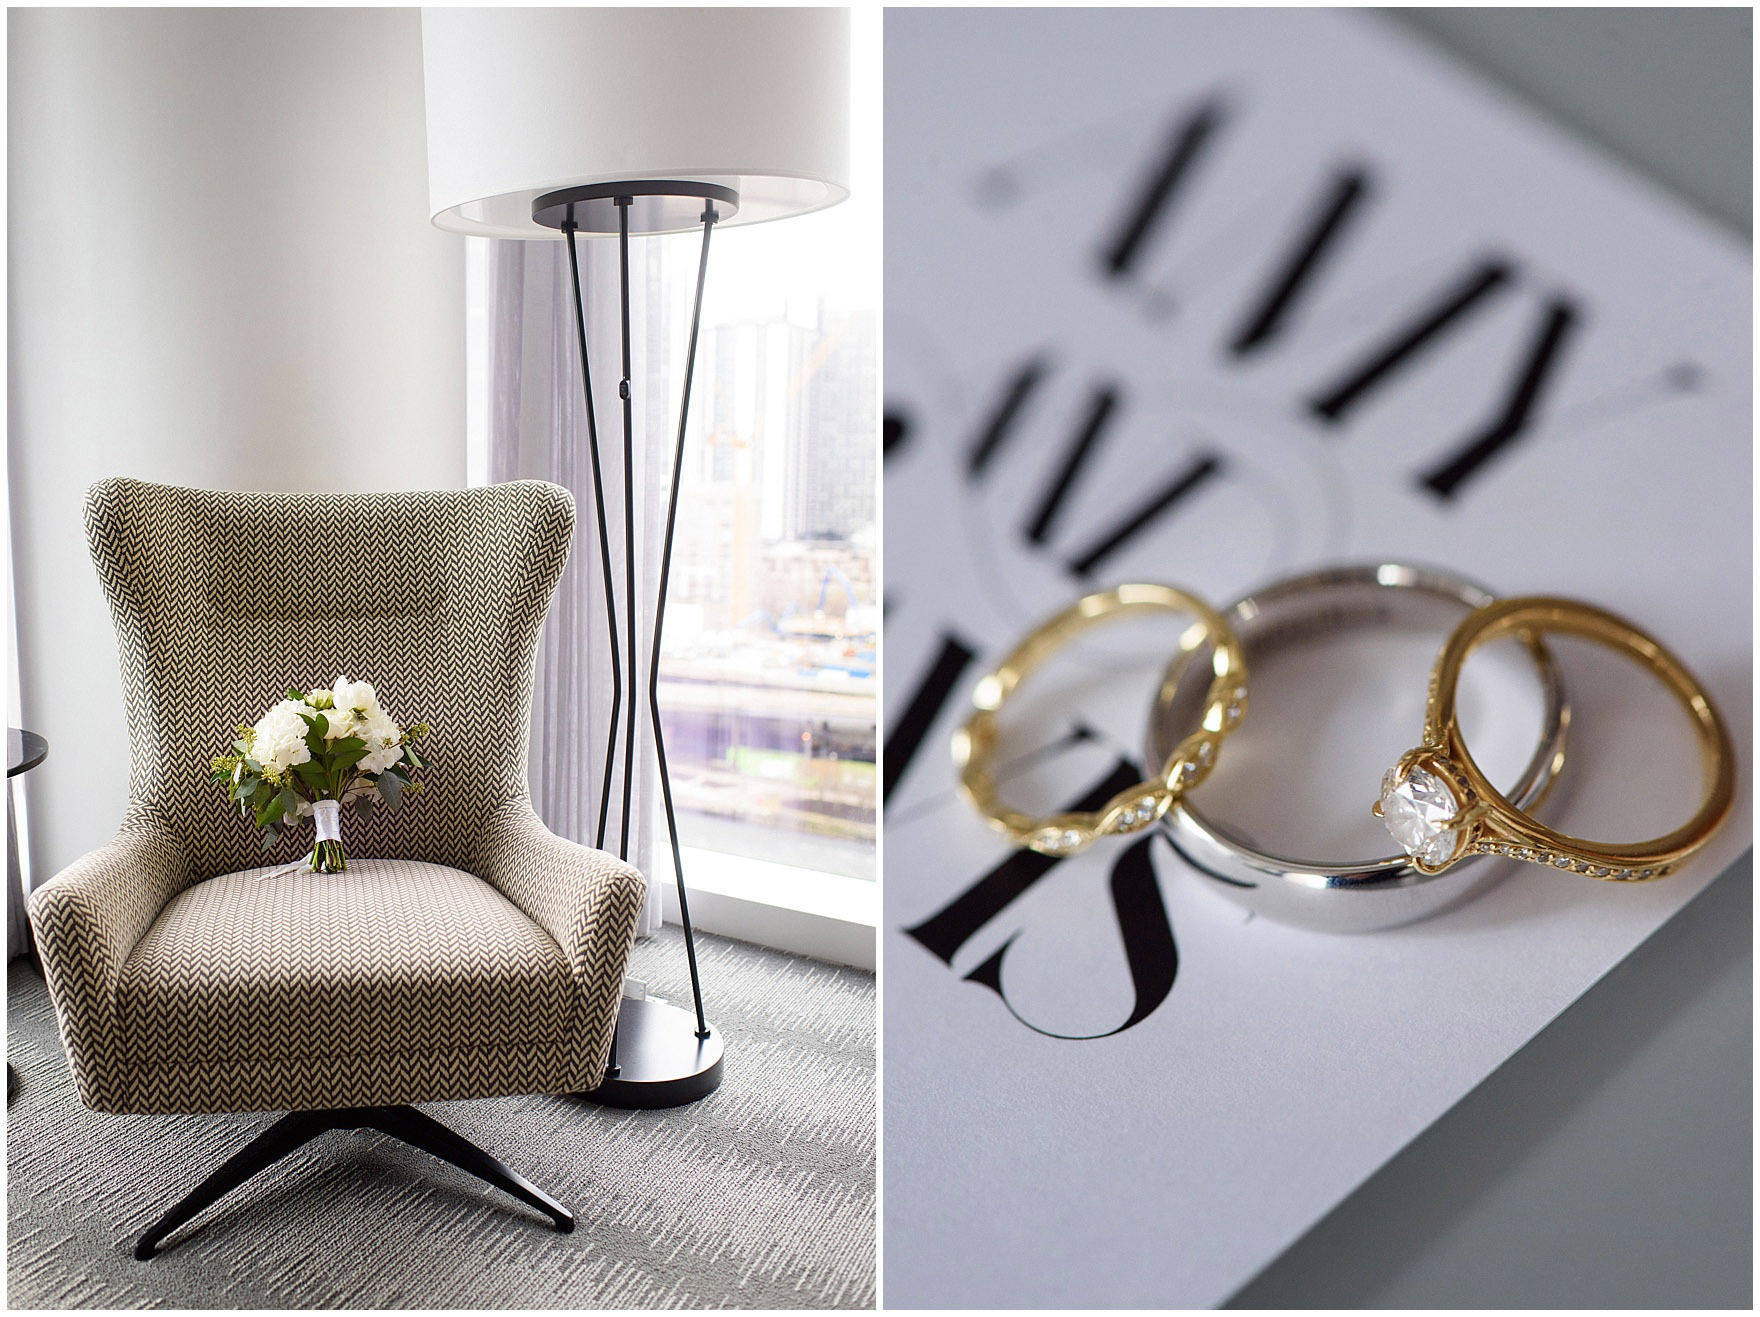 Bridal details in the getting ready suite at the Loews Chicago Downtown hotel prior to an Ovation Chicago wedding.